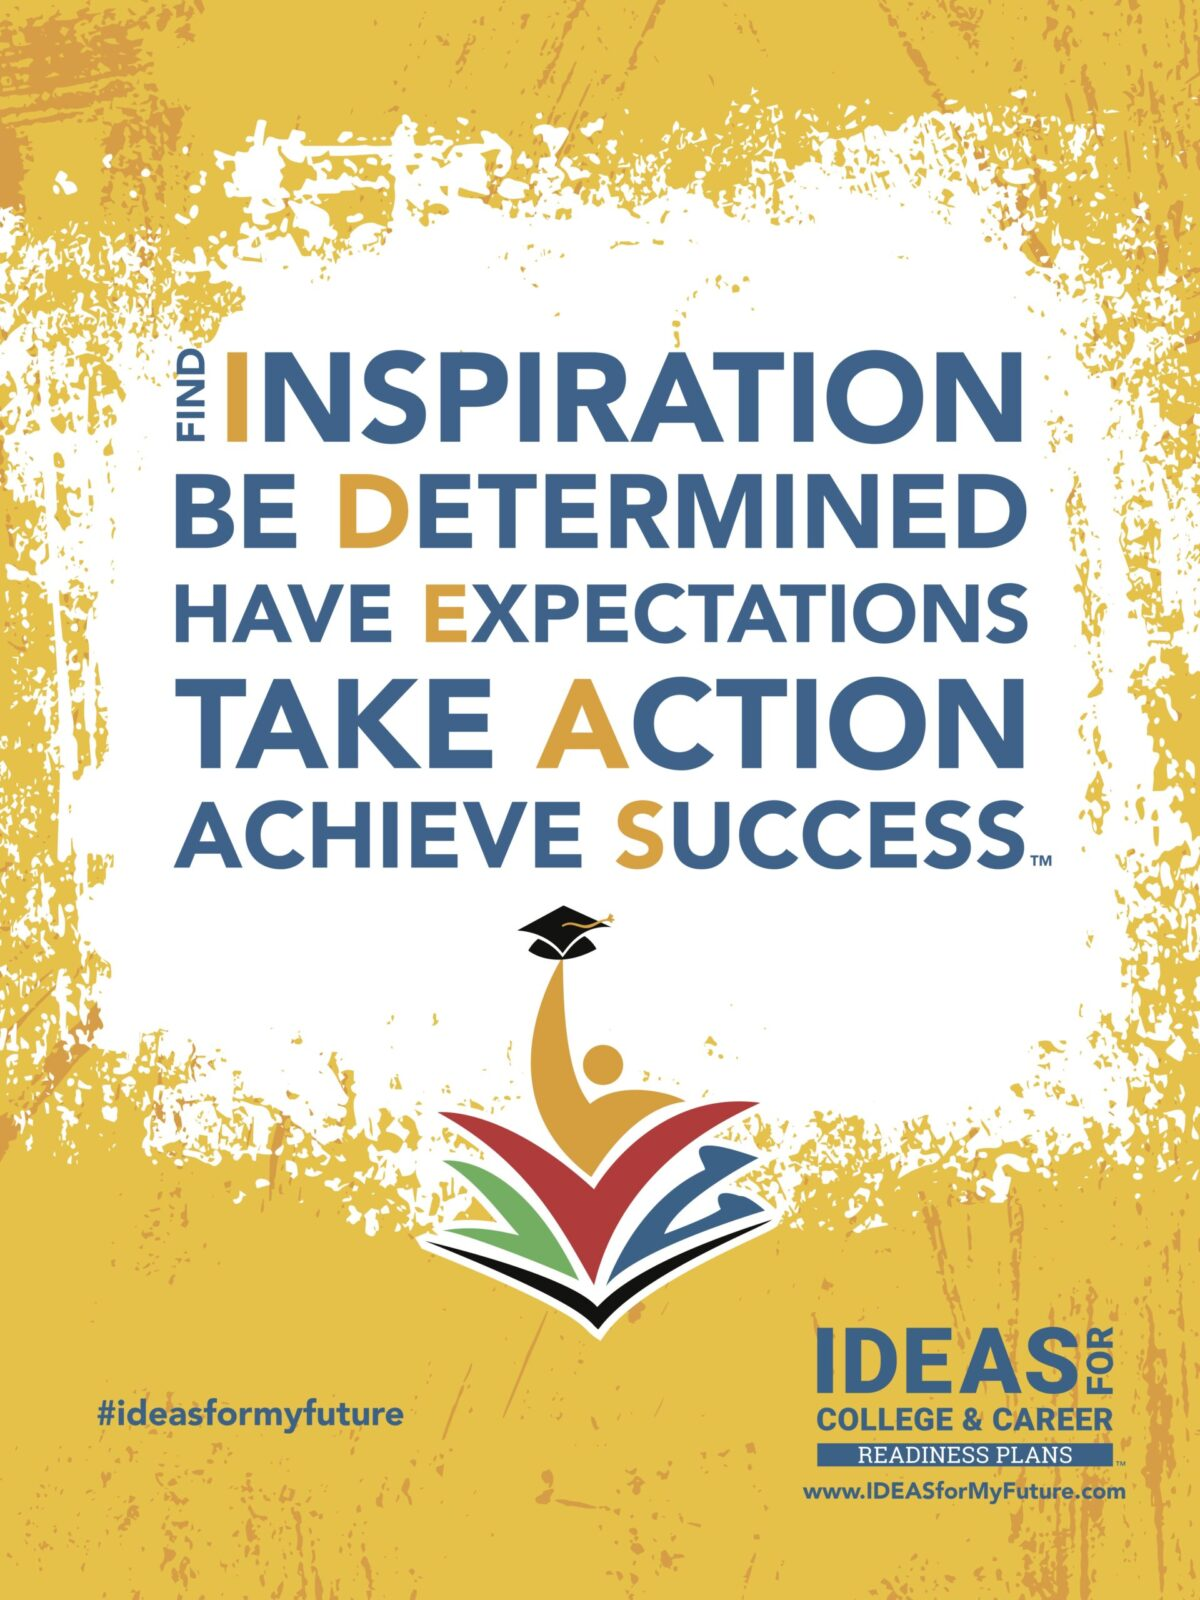 IDEAS Banner gold with blue letters